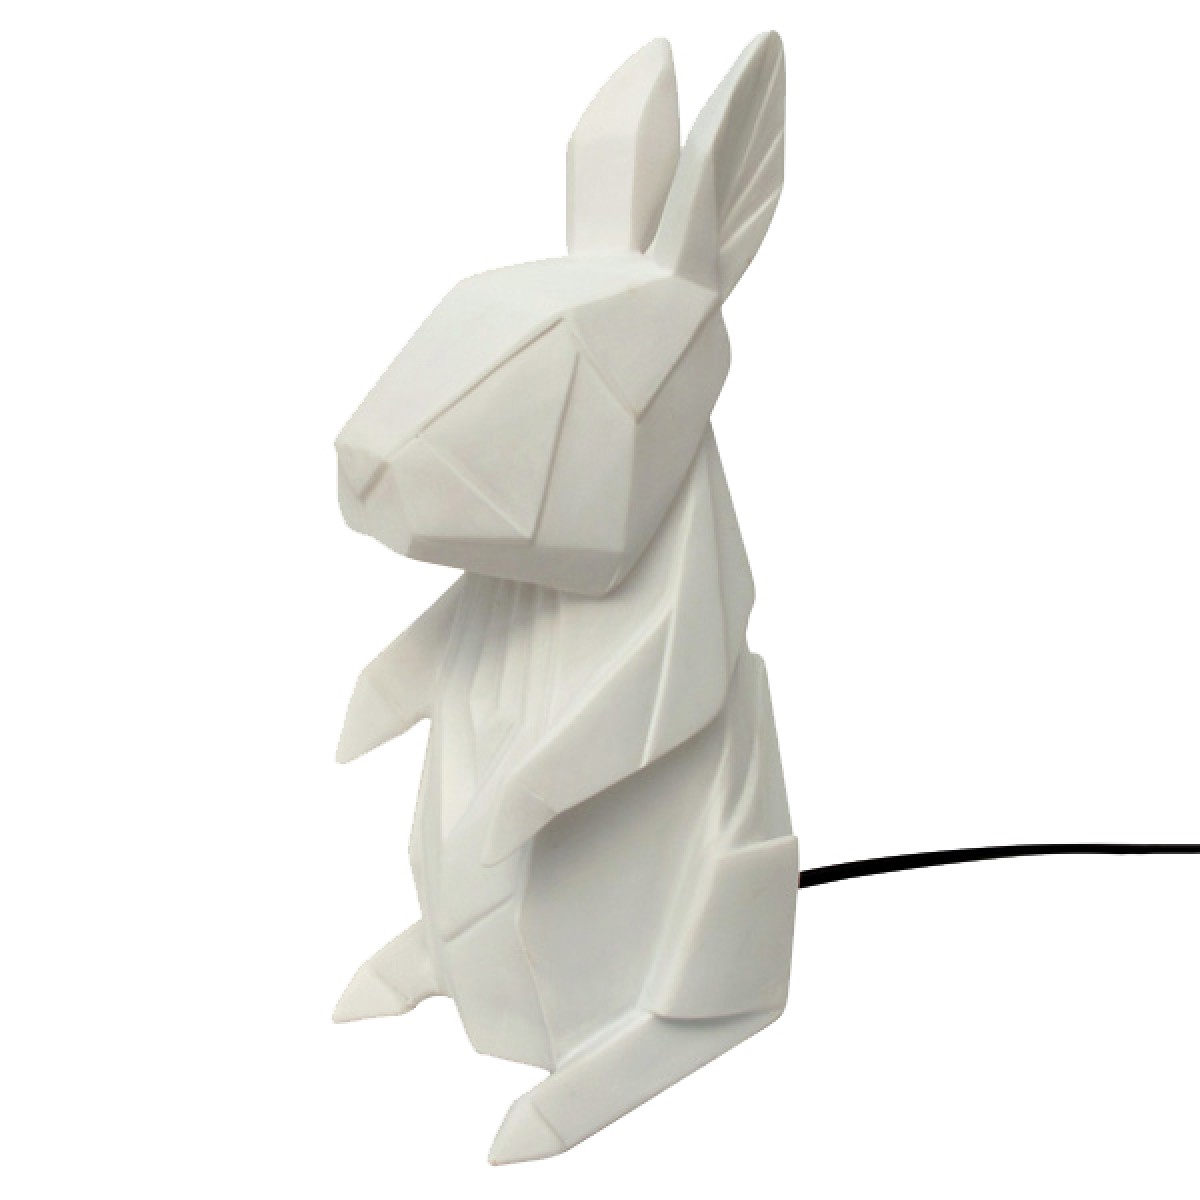 p moooi carousell on rabbit photo lamp else replica everything